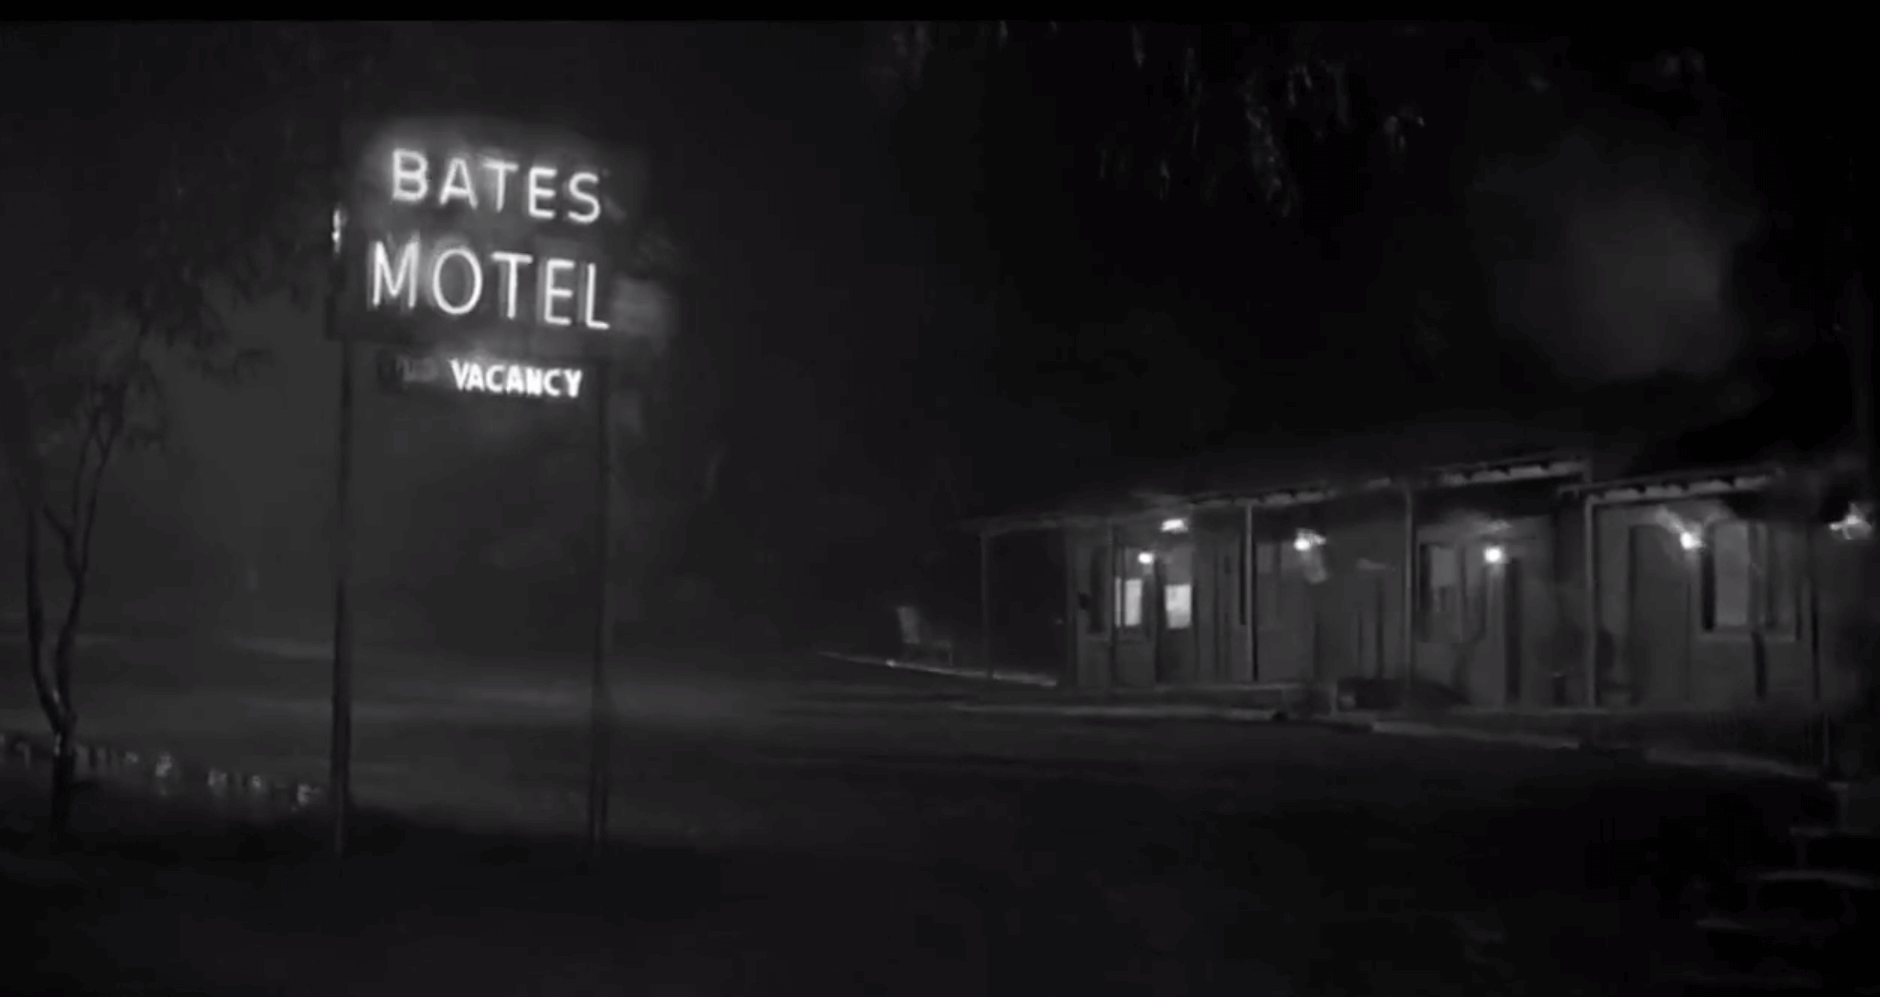 The infamous Bates Motel Neon Sign Design